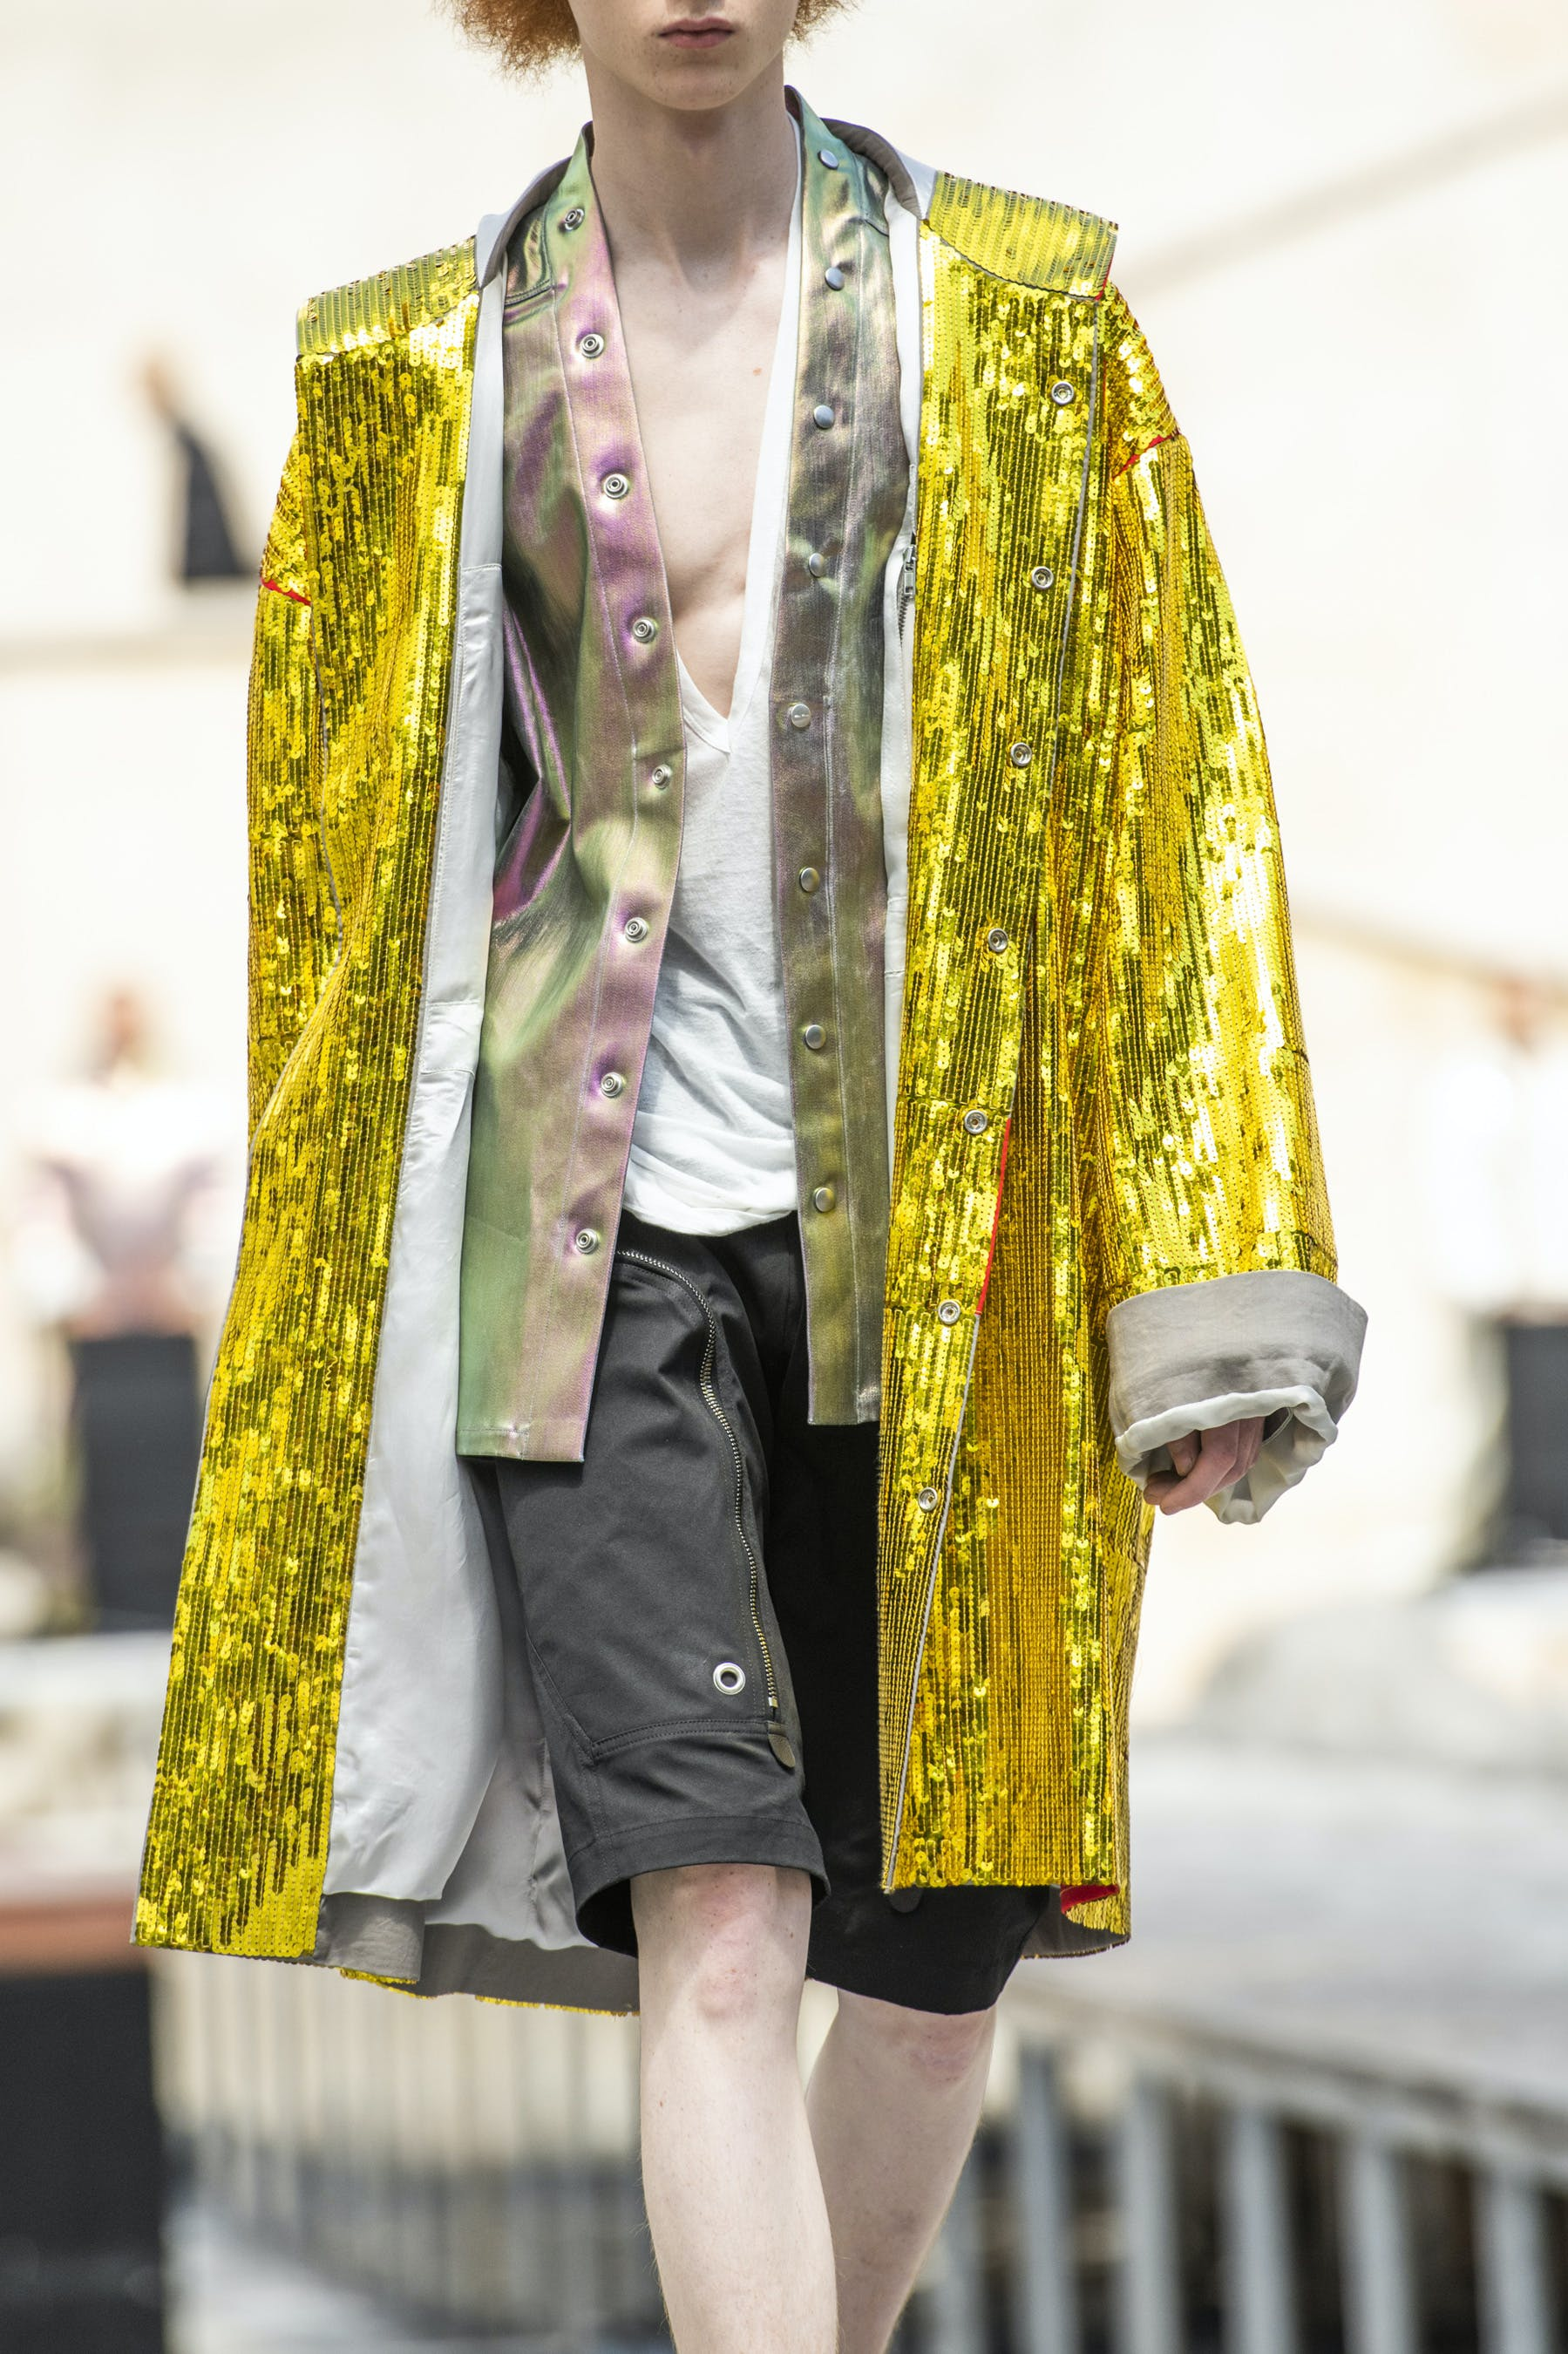 Rick Owens Runway Details Off The Runway Beach Hand Embroidered Sequins Parka In Yellow Cotton Larry Shirt In Iridescent Lemon Yellow Champion Collaboration V Neck T Shirt Full View Mens SS20 Tecautl